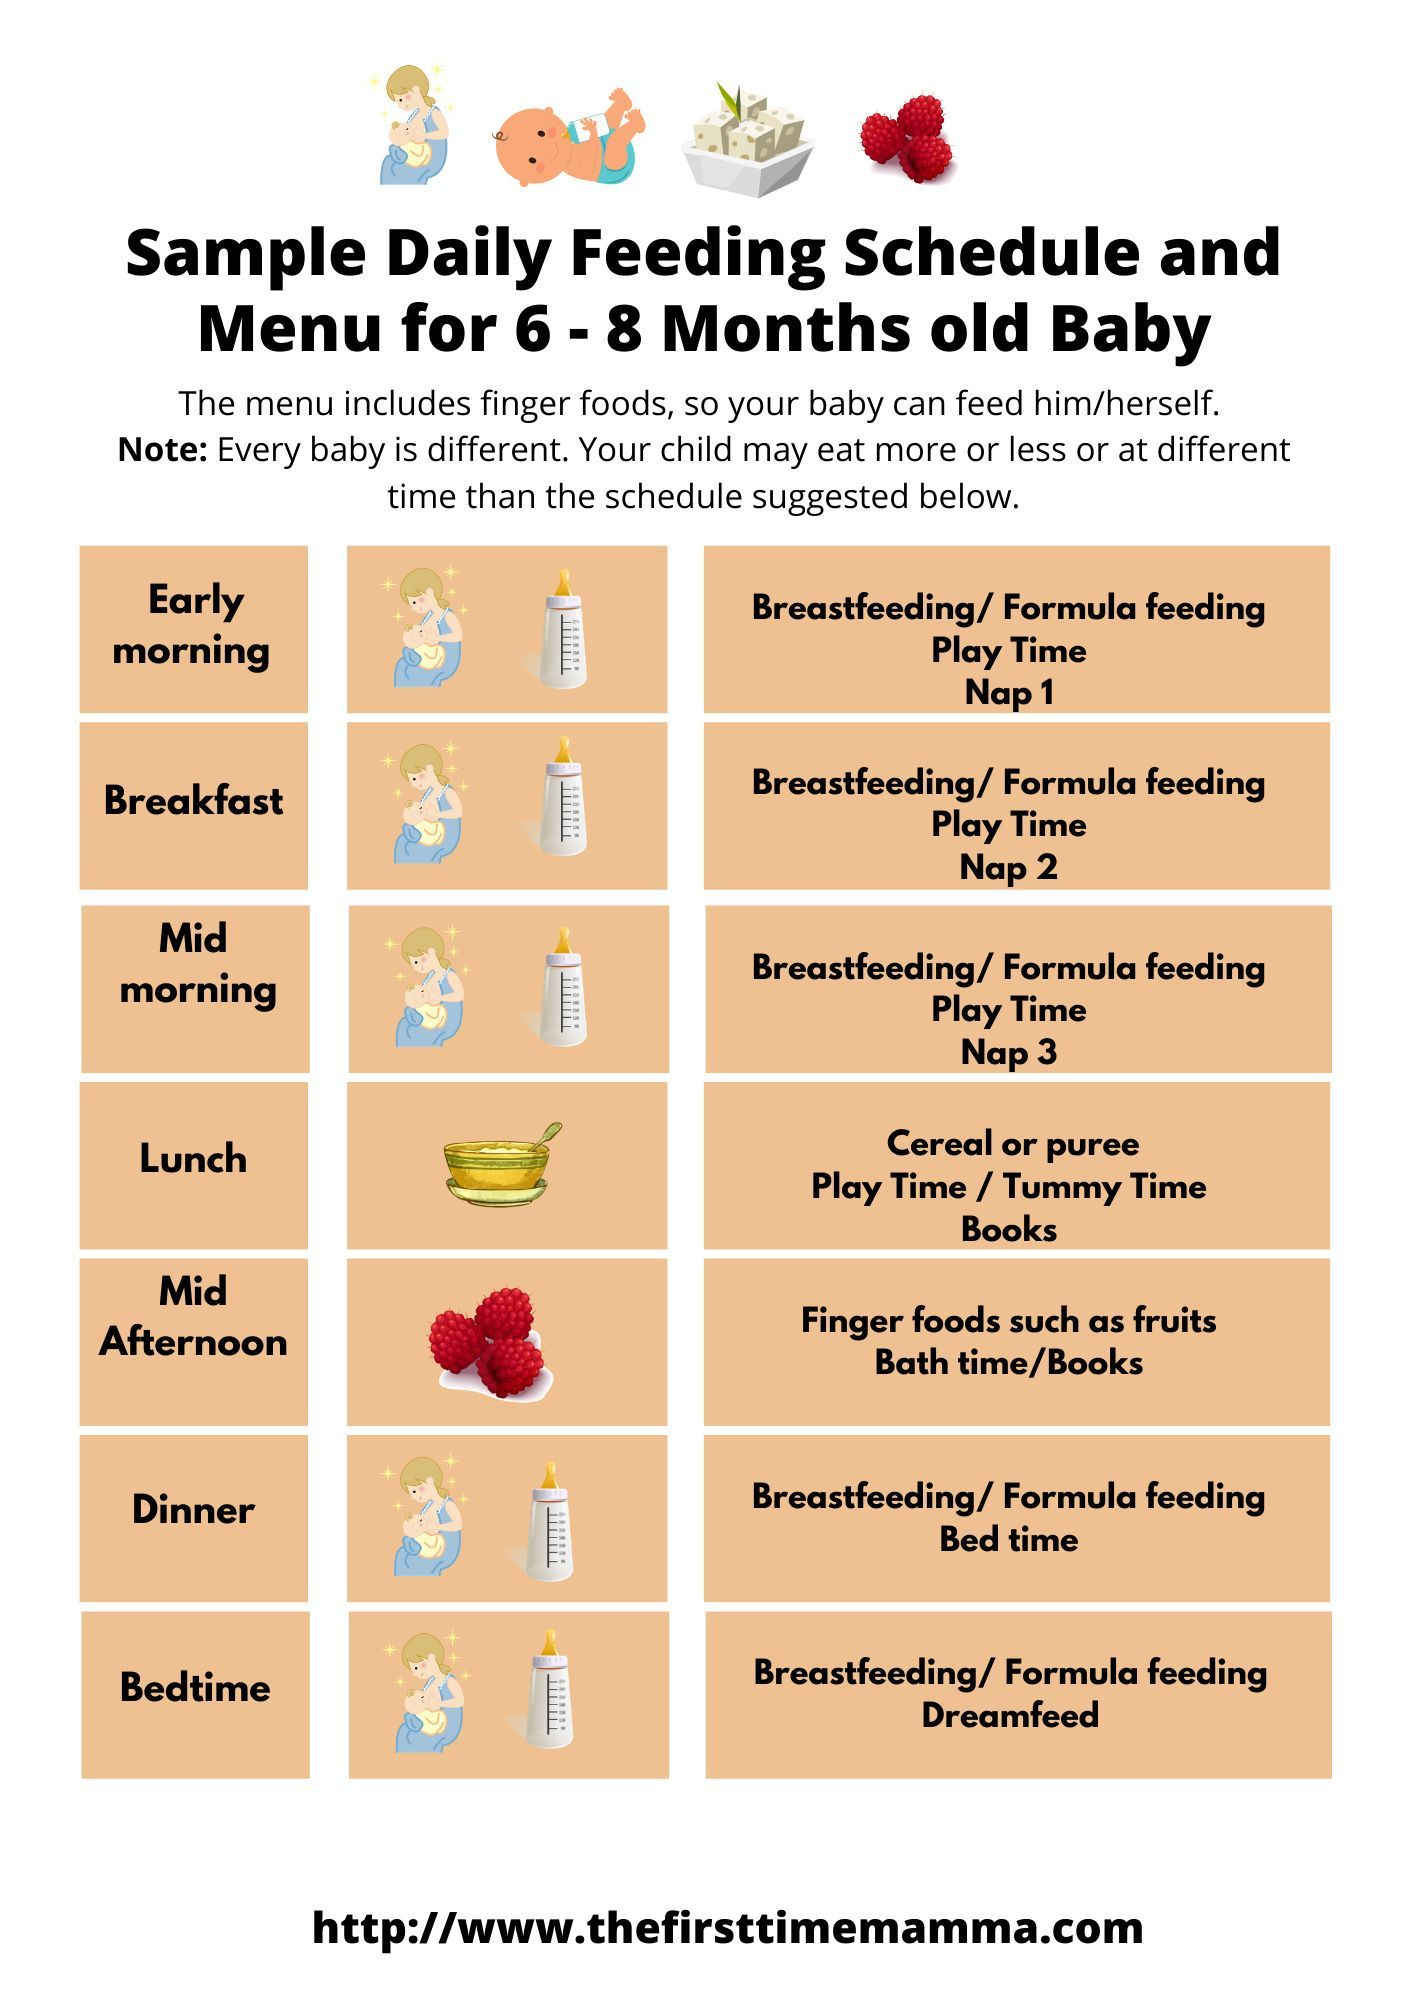 8 Month Feeding Schedule : month, feeding, schedule, Sample, Daily, Feeding, Schedule, Months, Tips,, Schedule,, Month